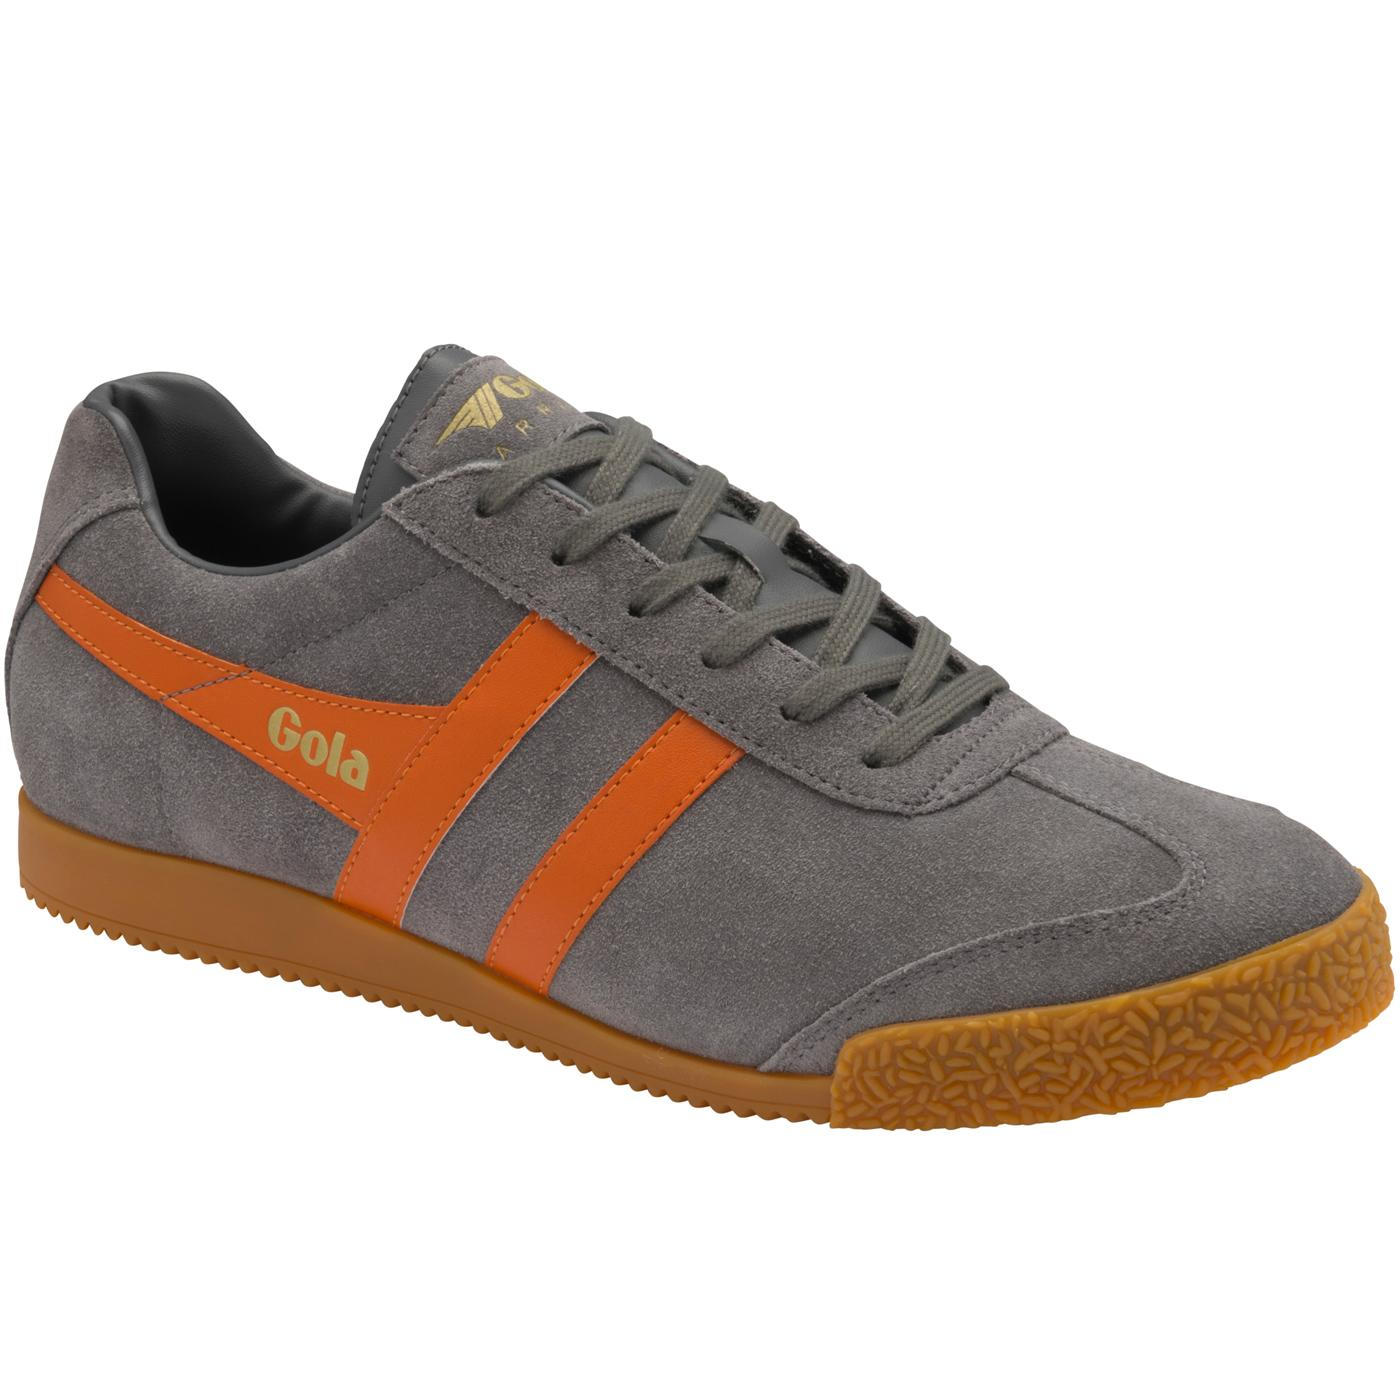 GOLA Harrier Suede Mens Retro 70s Trainers (A/MG)